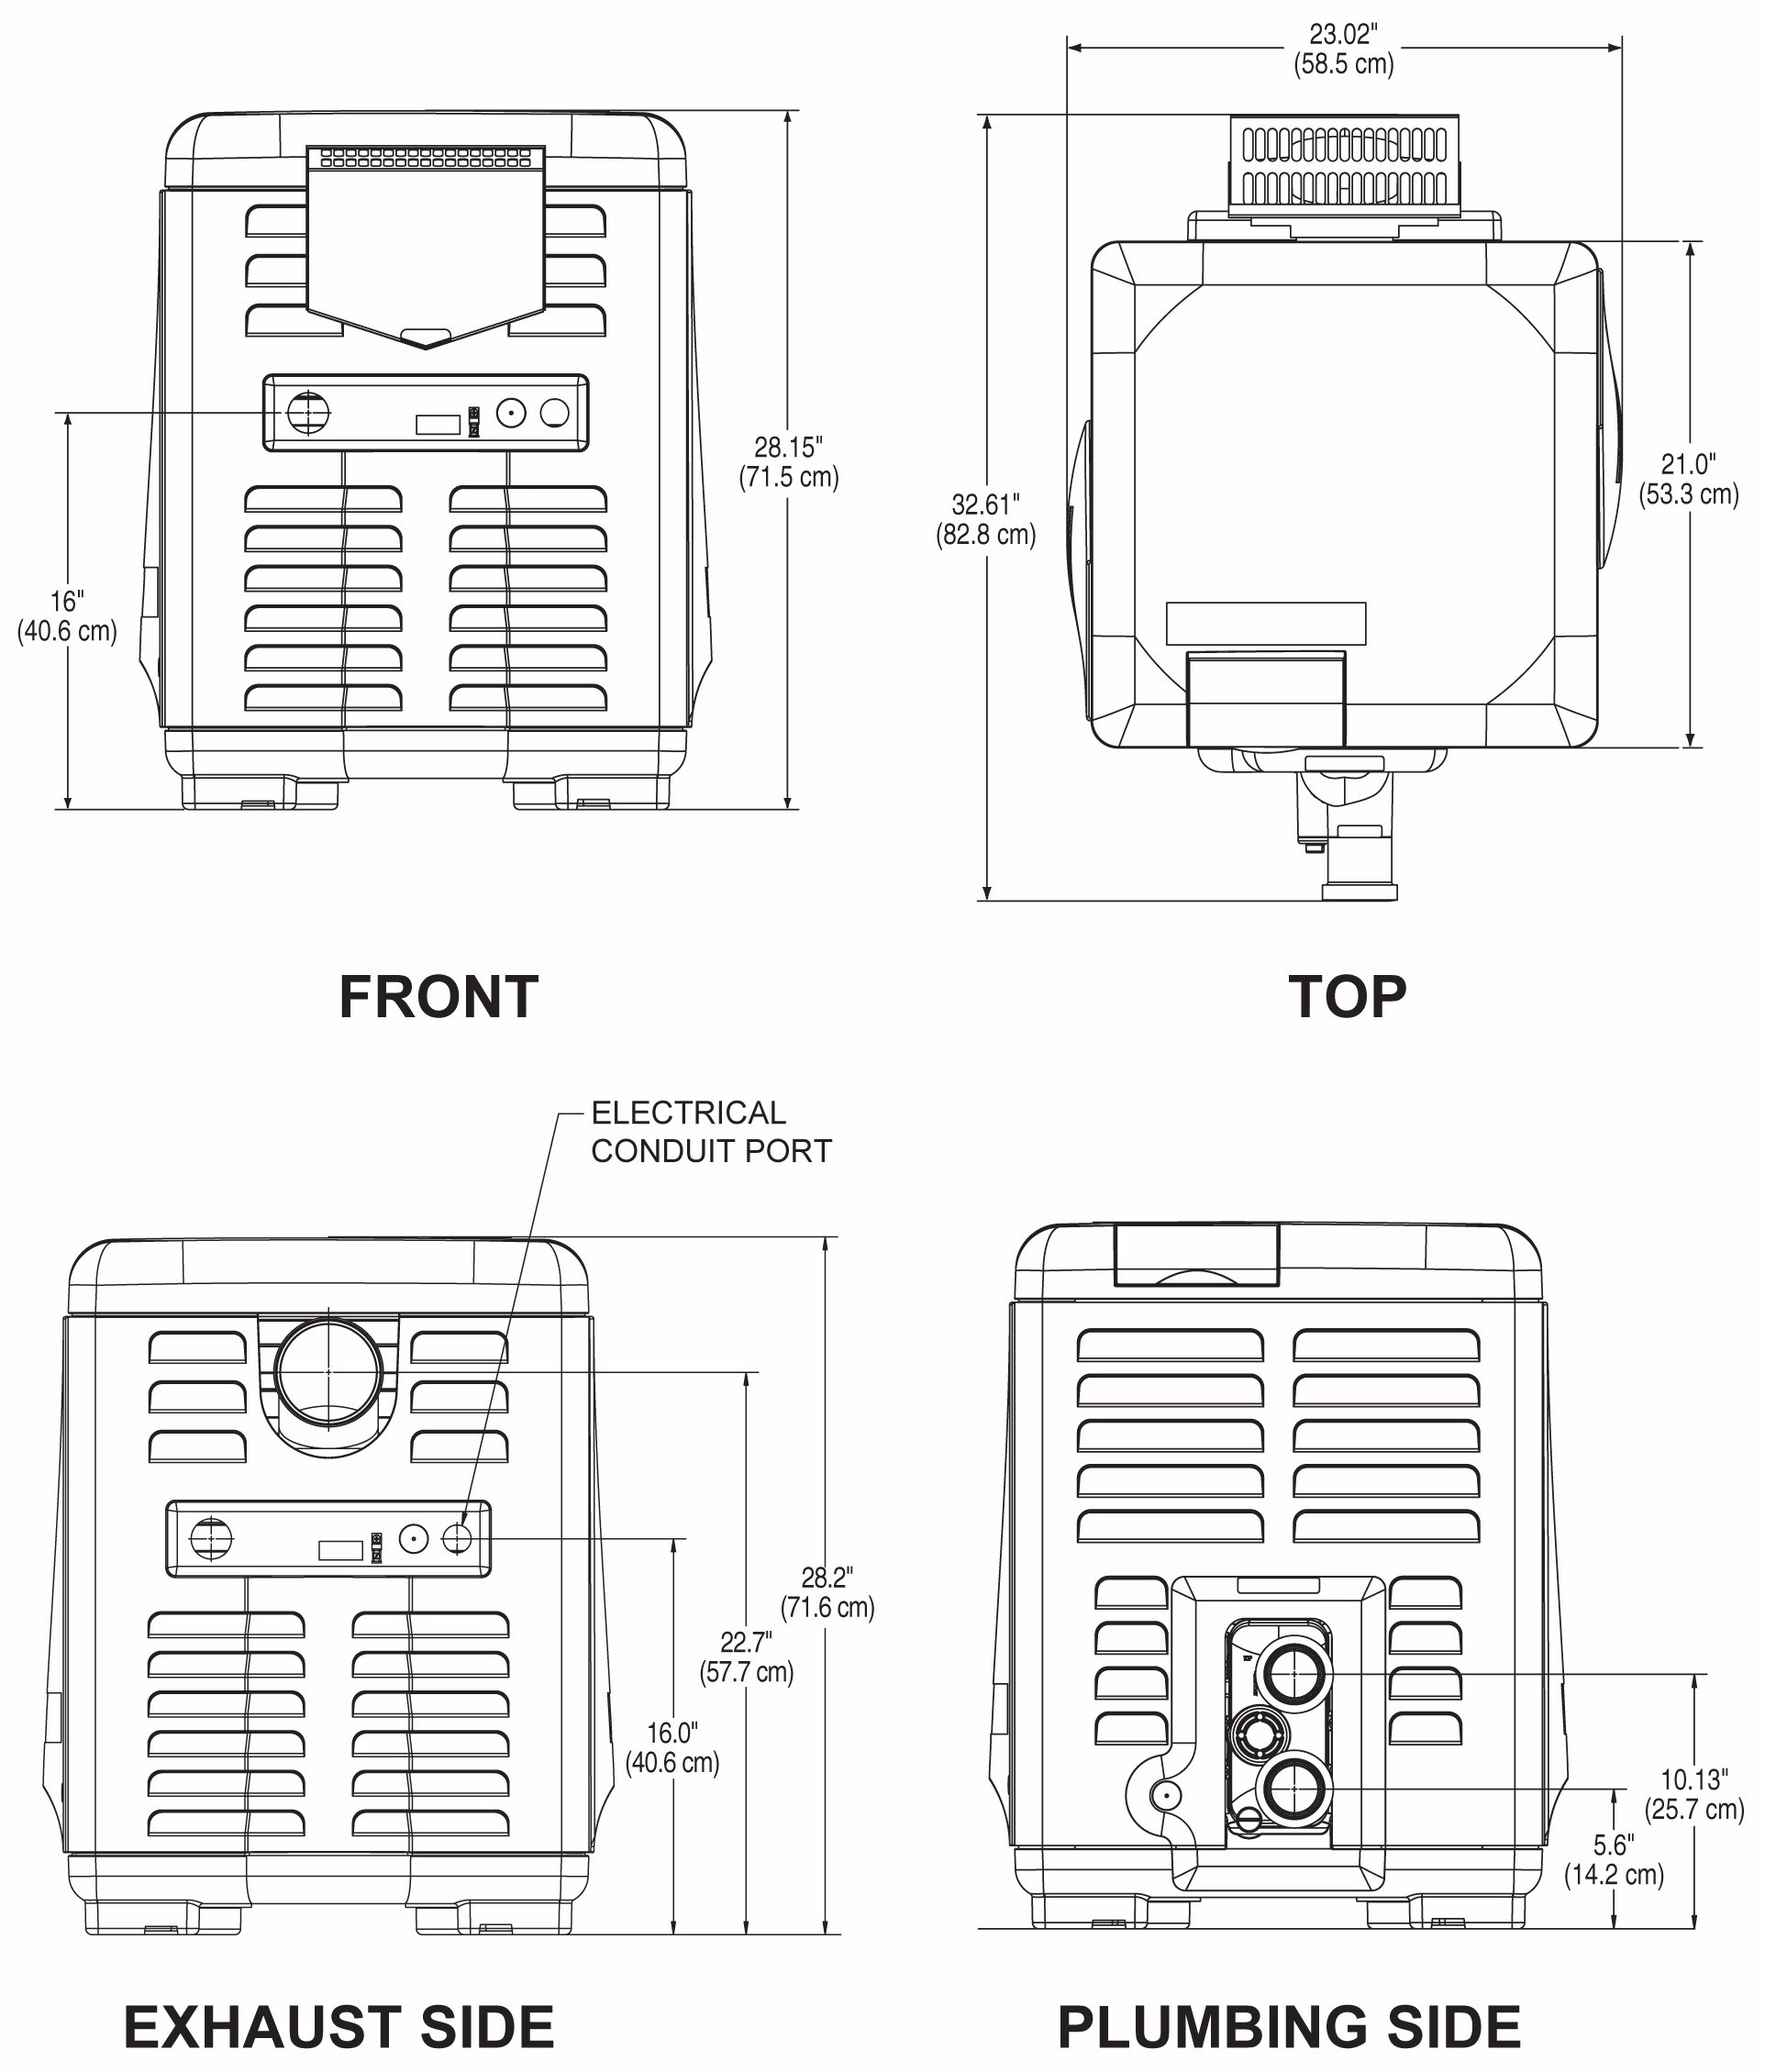 Chevy Cavalier Stereo Wiring Diagram - Schematics Online on